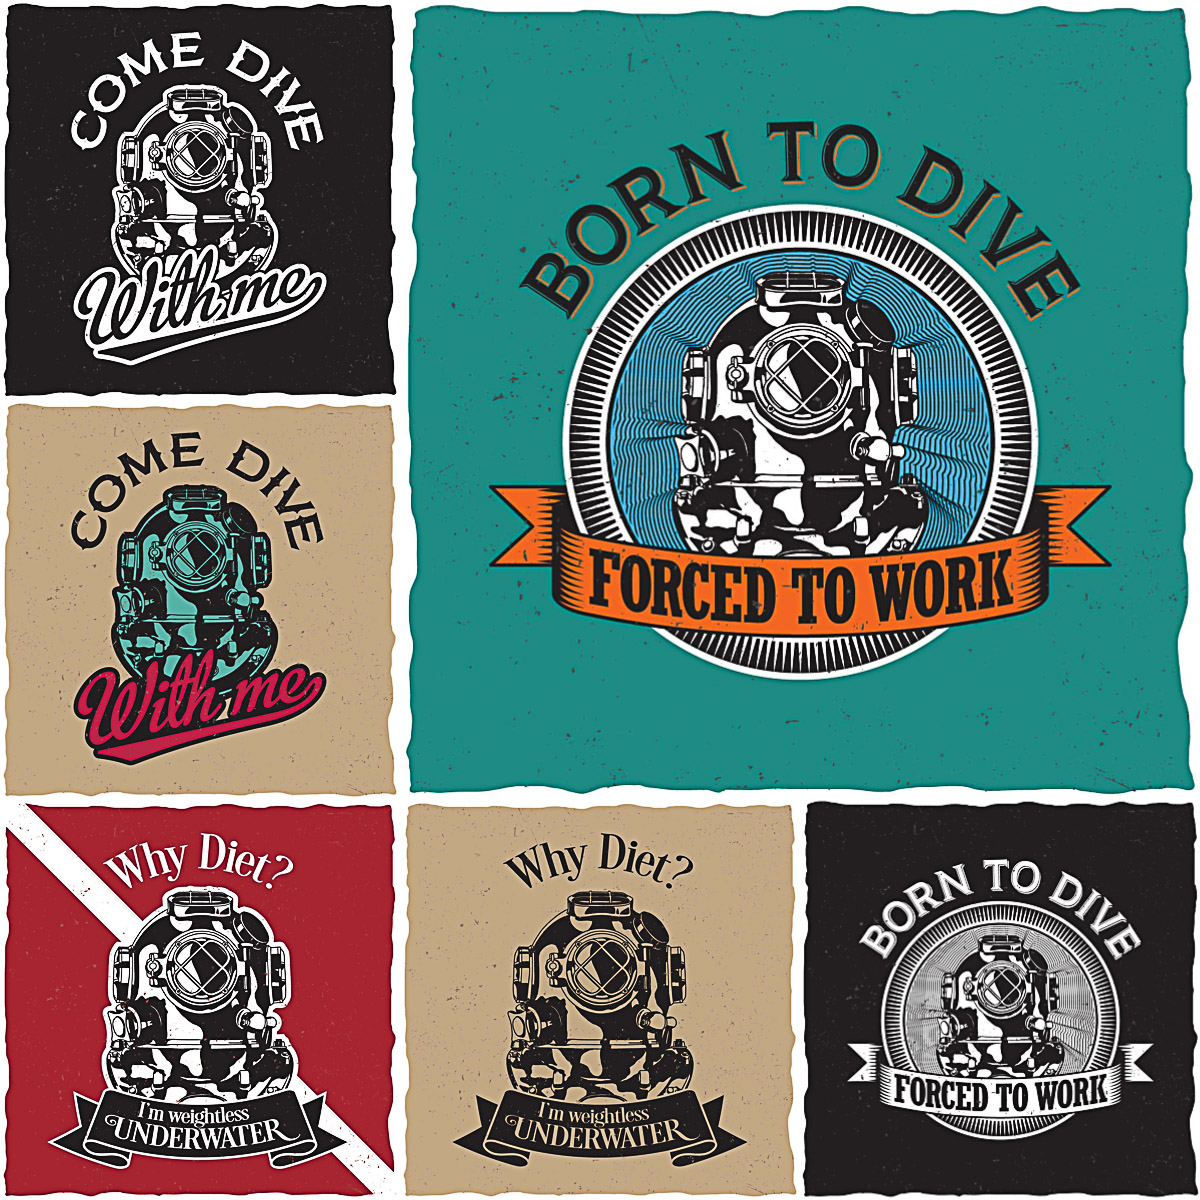 Diver t shirt labels design print free download for T shirt designing and printing